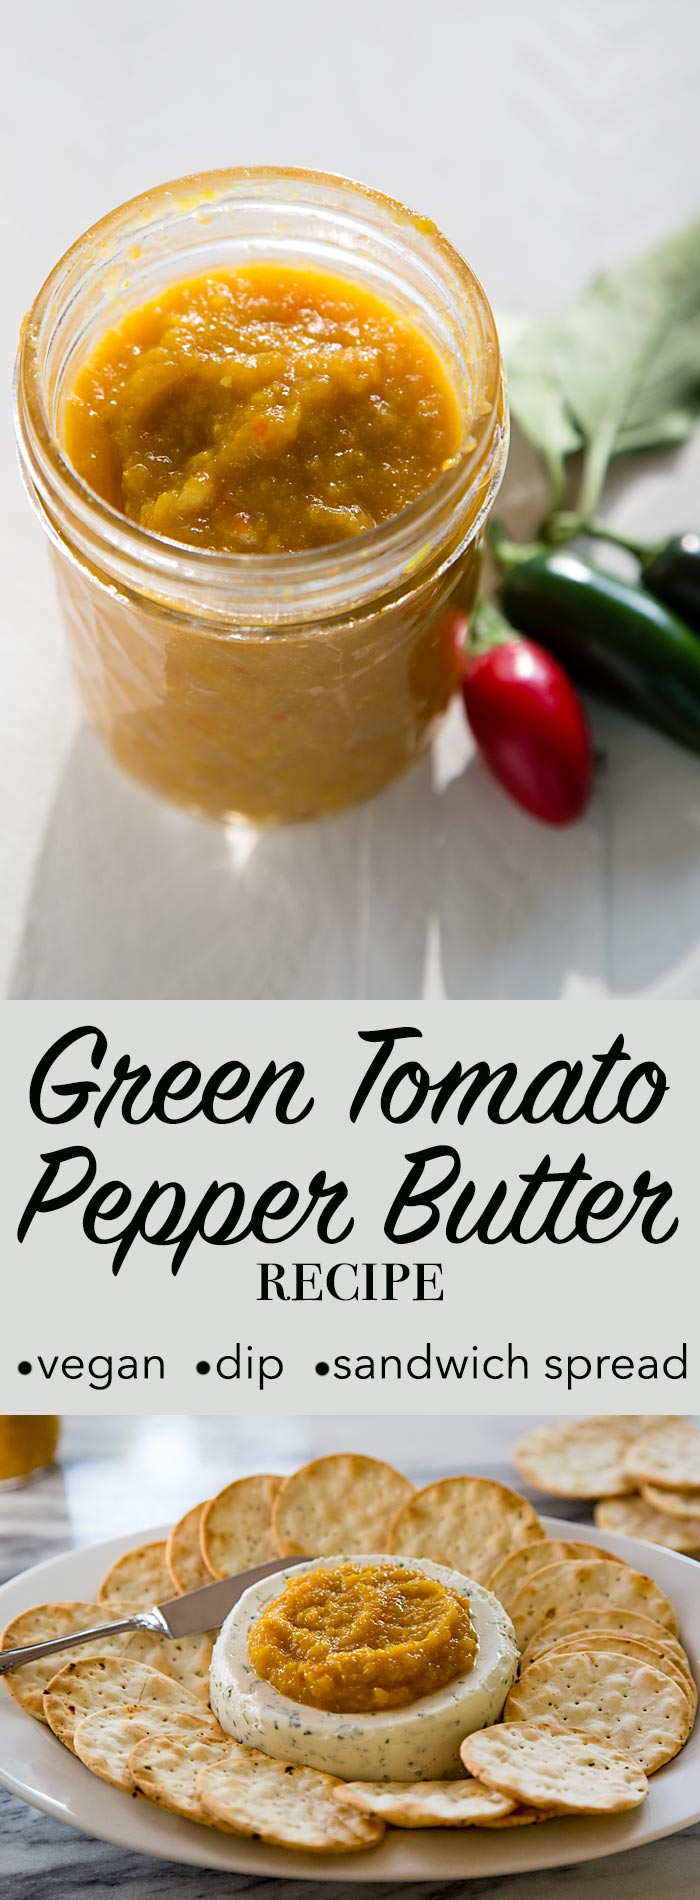 This Green Tomato Pepper Butter is a sweet-tangy spread that can be as spicy as you want. Use it on sandwiches, in appetizers, and as a base for stir-fries. Vegan, gluten-free.